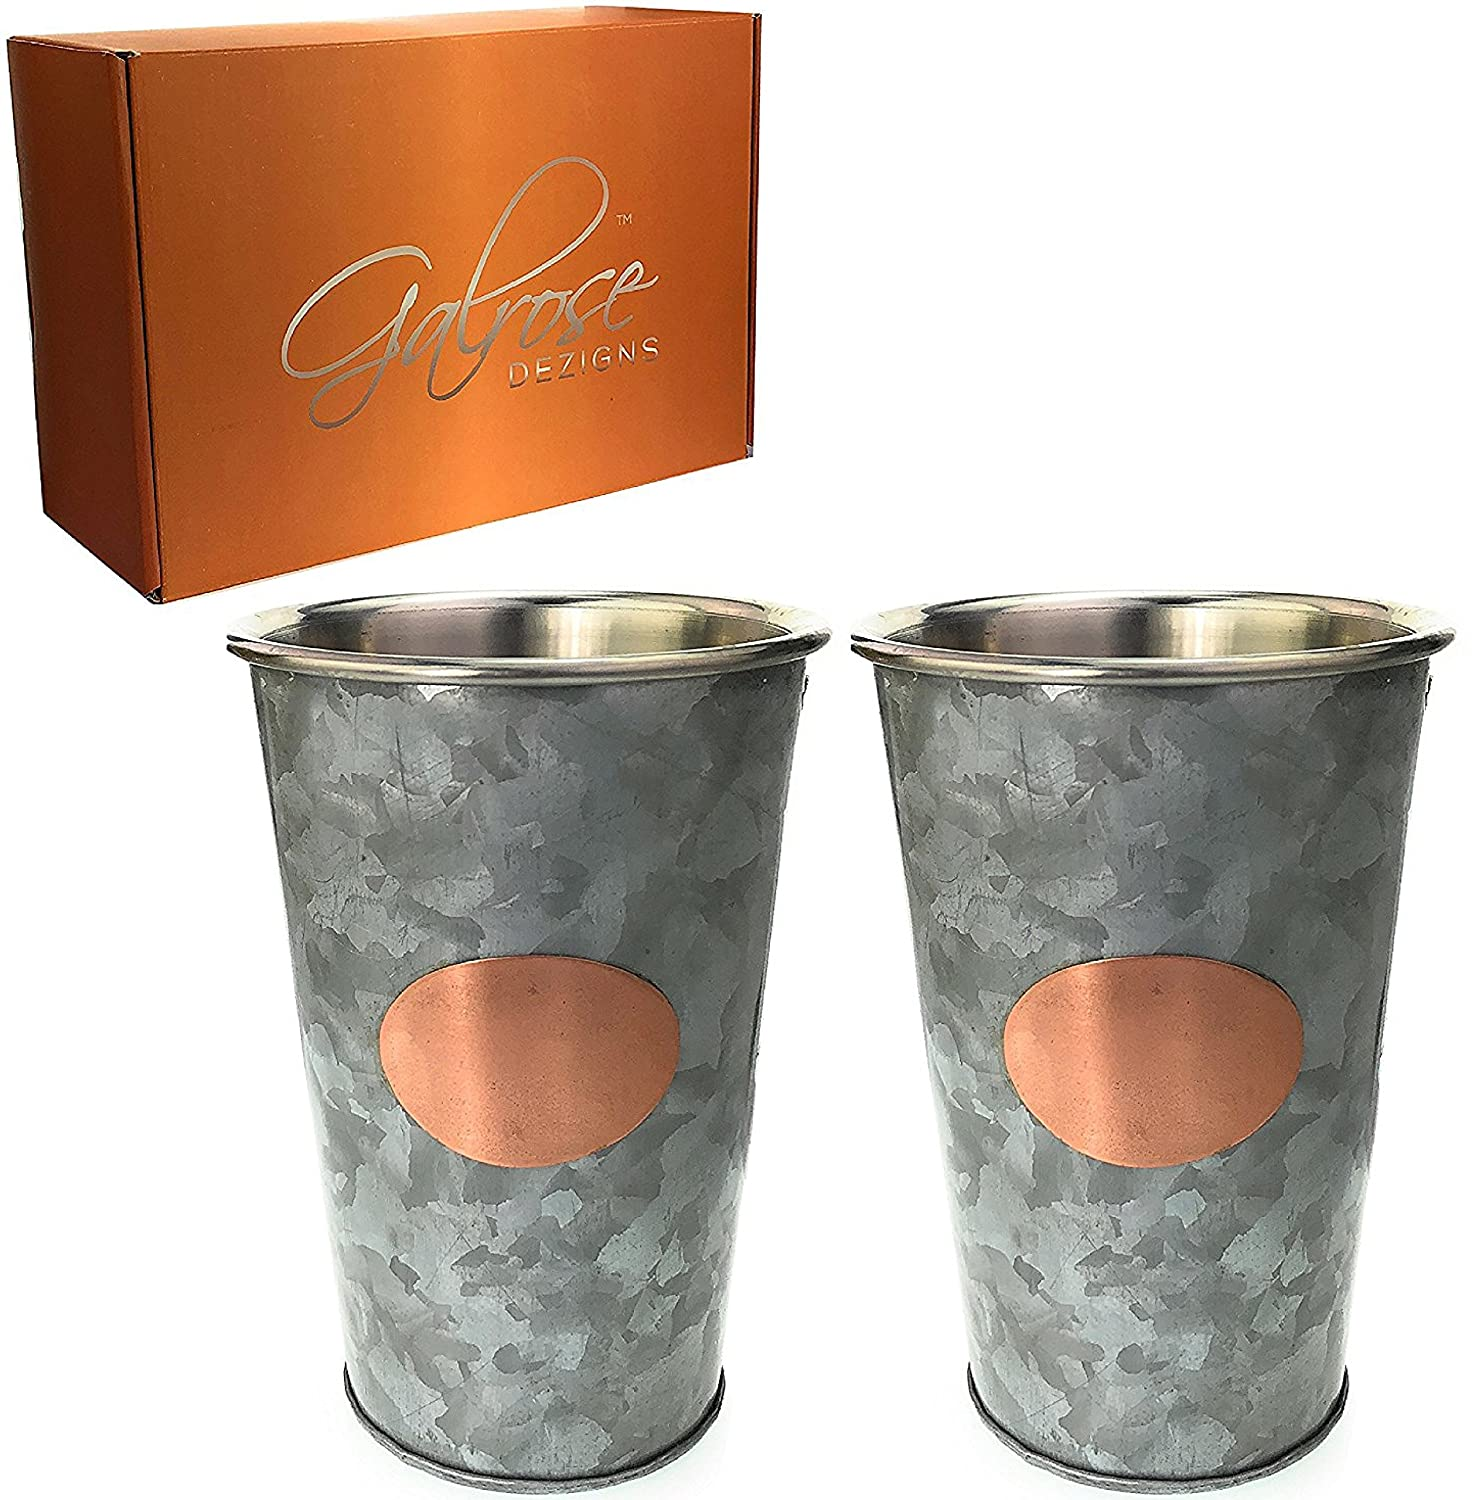 Galrose DRINKING GLASSES Set of 2-Stylish Galvanized Iron Cups//Mugs Moscow Mule Mint Julep Alternative Stainless Steel Lined Double Wall with Rose Gold Plaque 6th Wedding Anniversary Gift Idea Galrose Dezigns